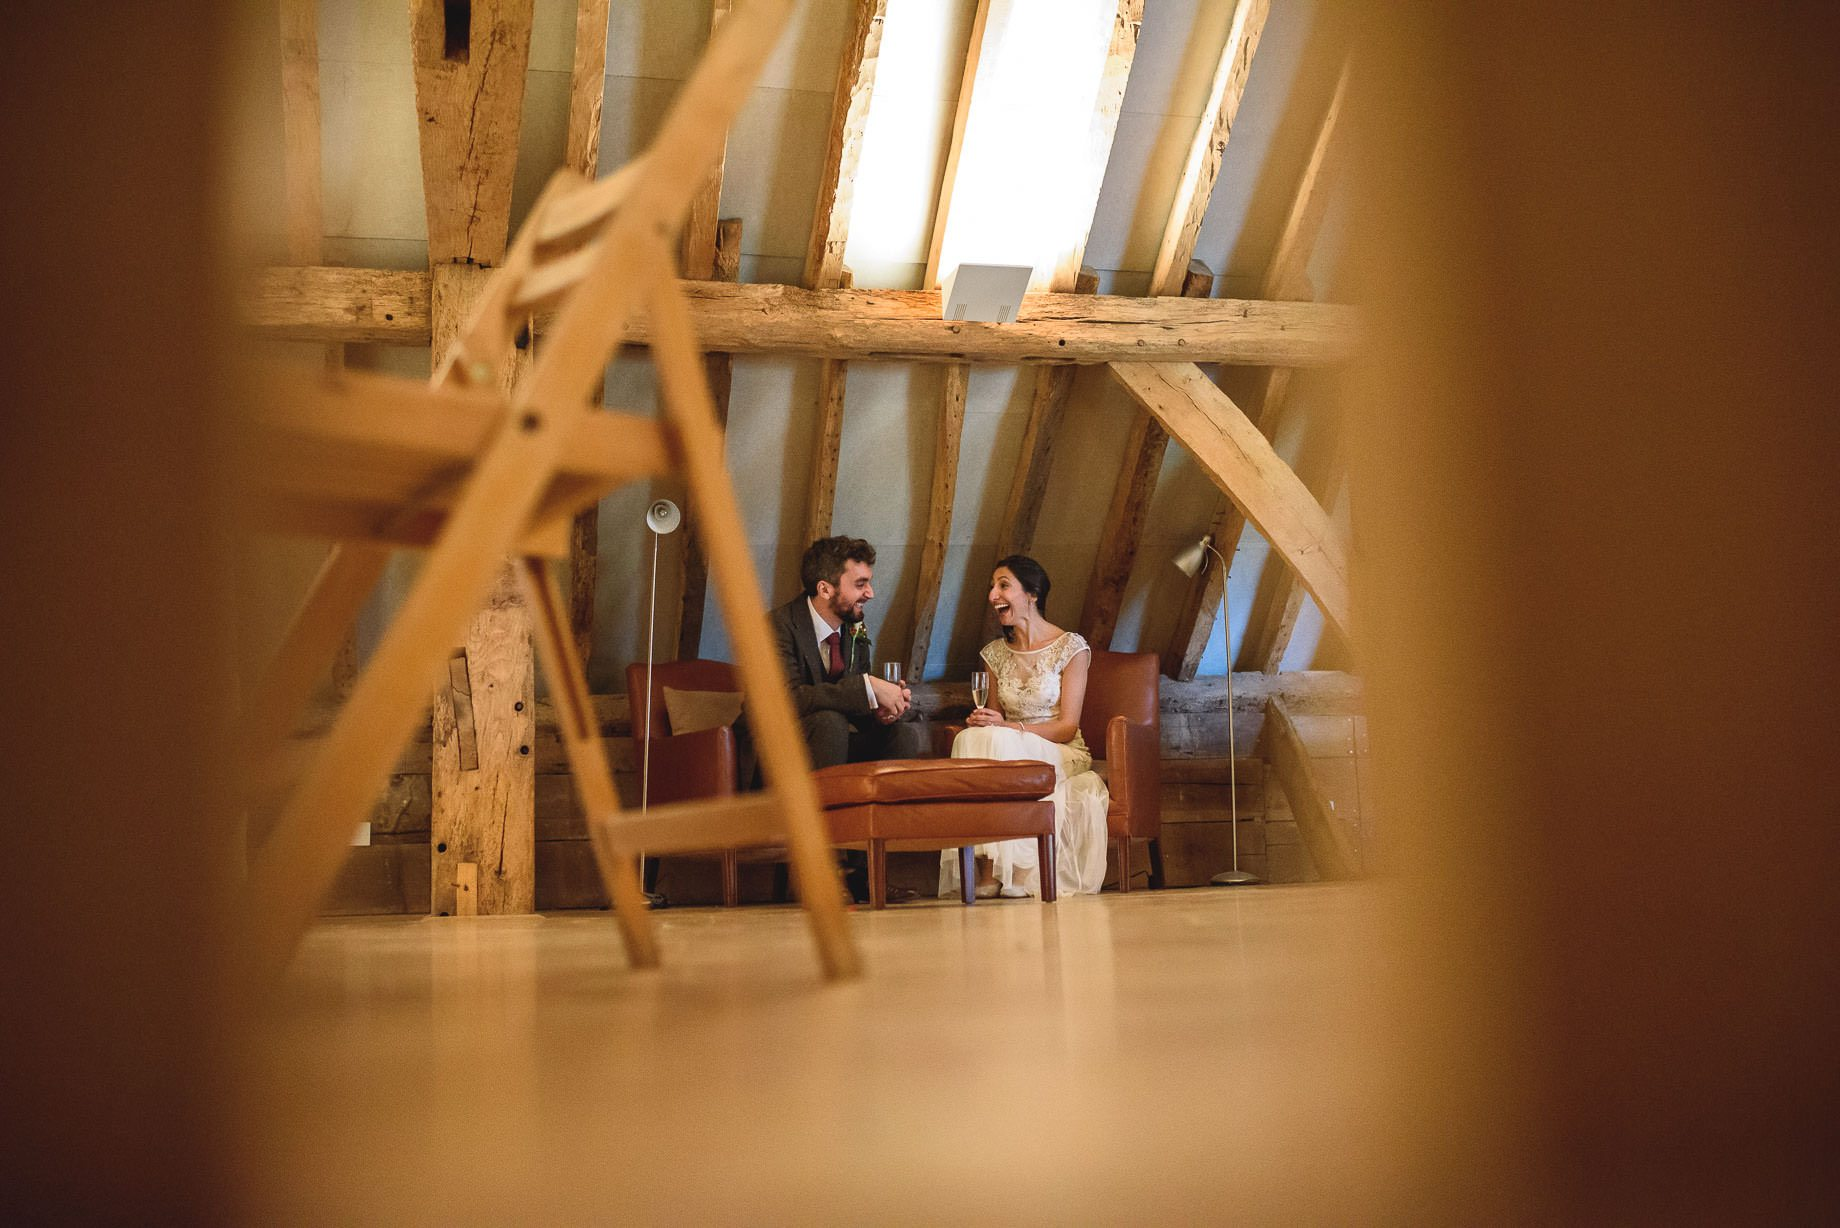 bury-court-barn-wedding-photography-guy-collier-photography-nadia-tom-135-of-184